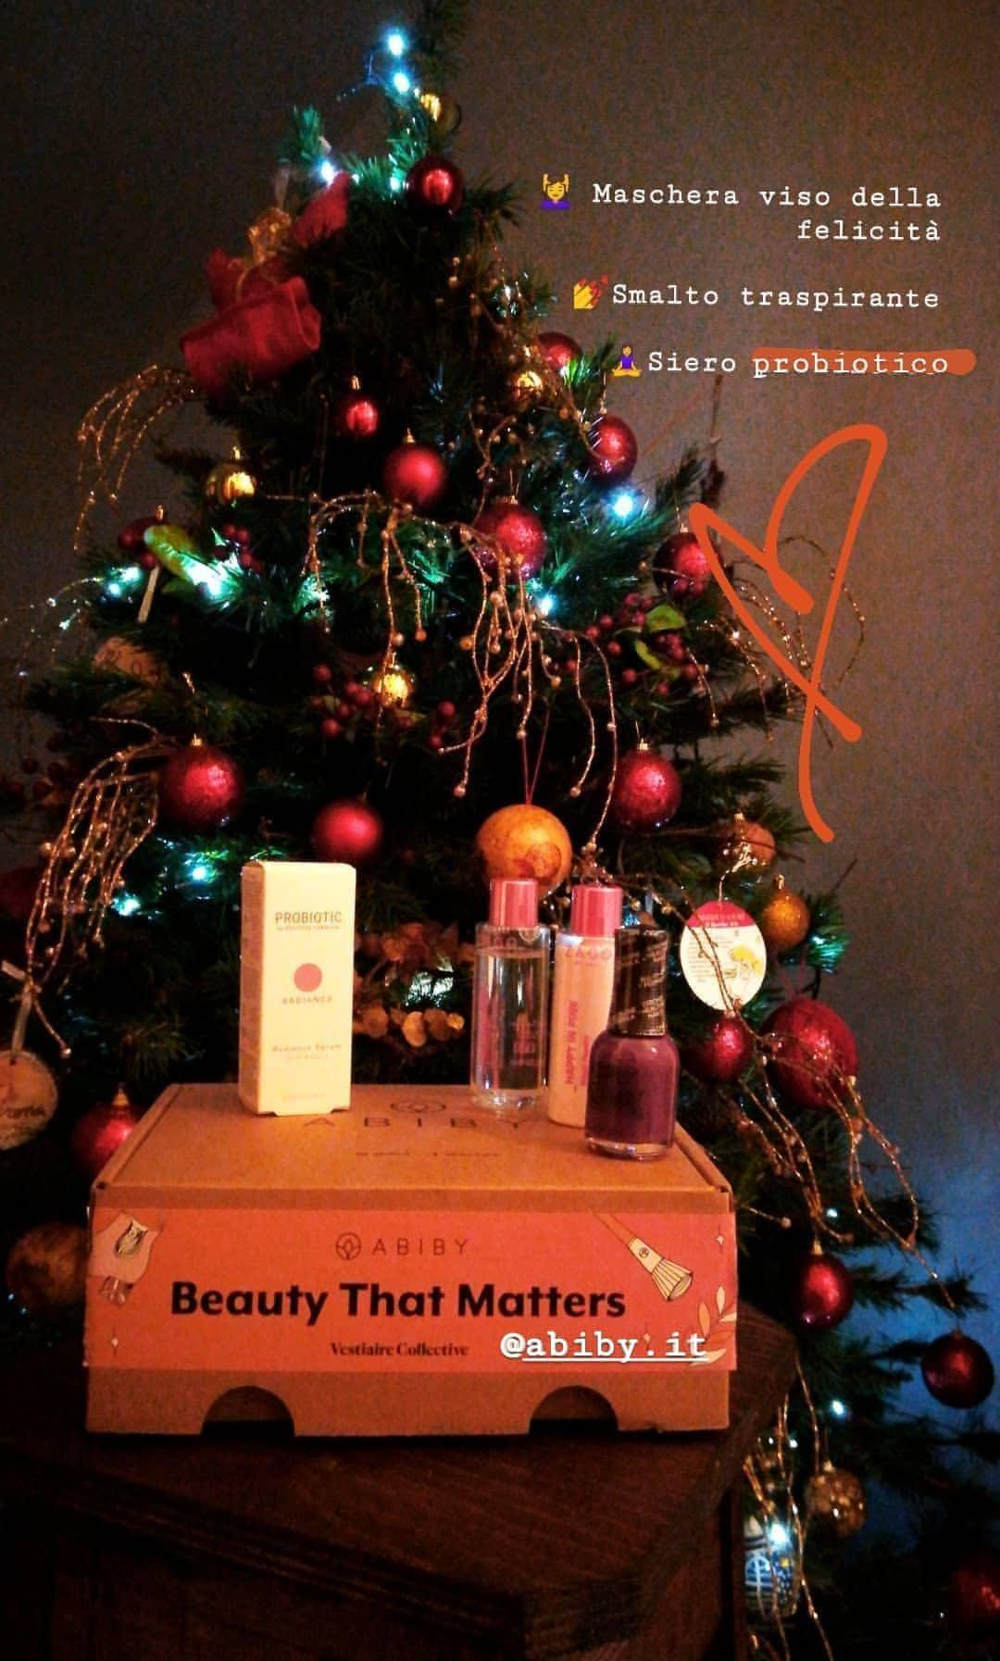 Beauty box natalizia di Abiby